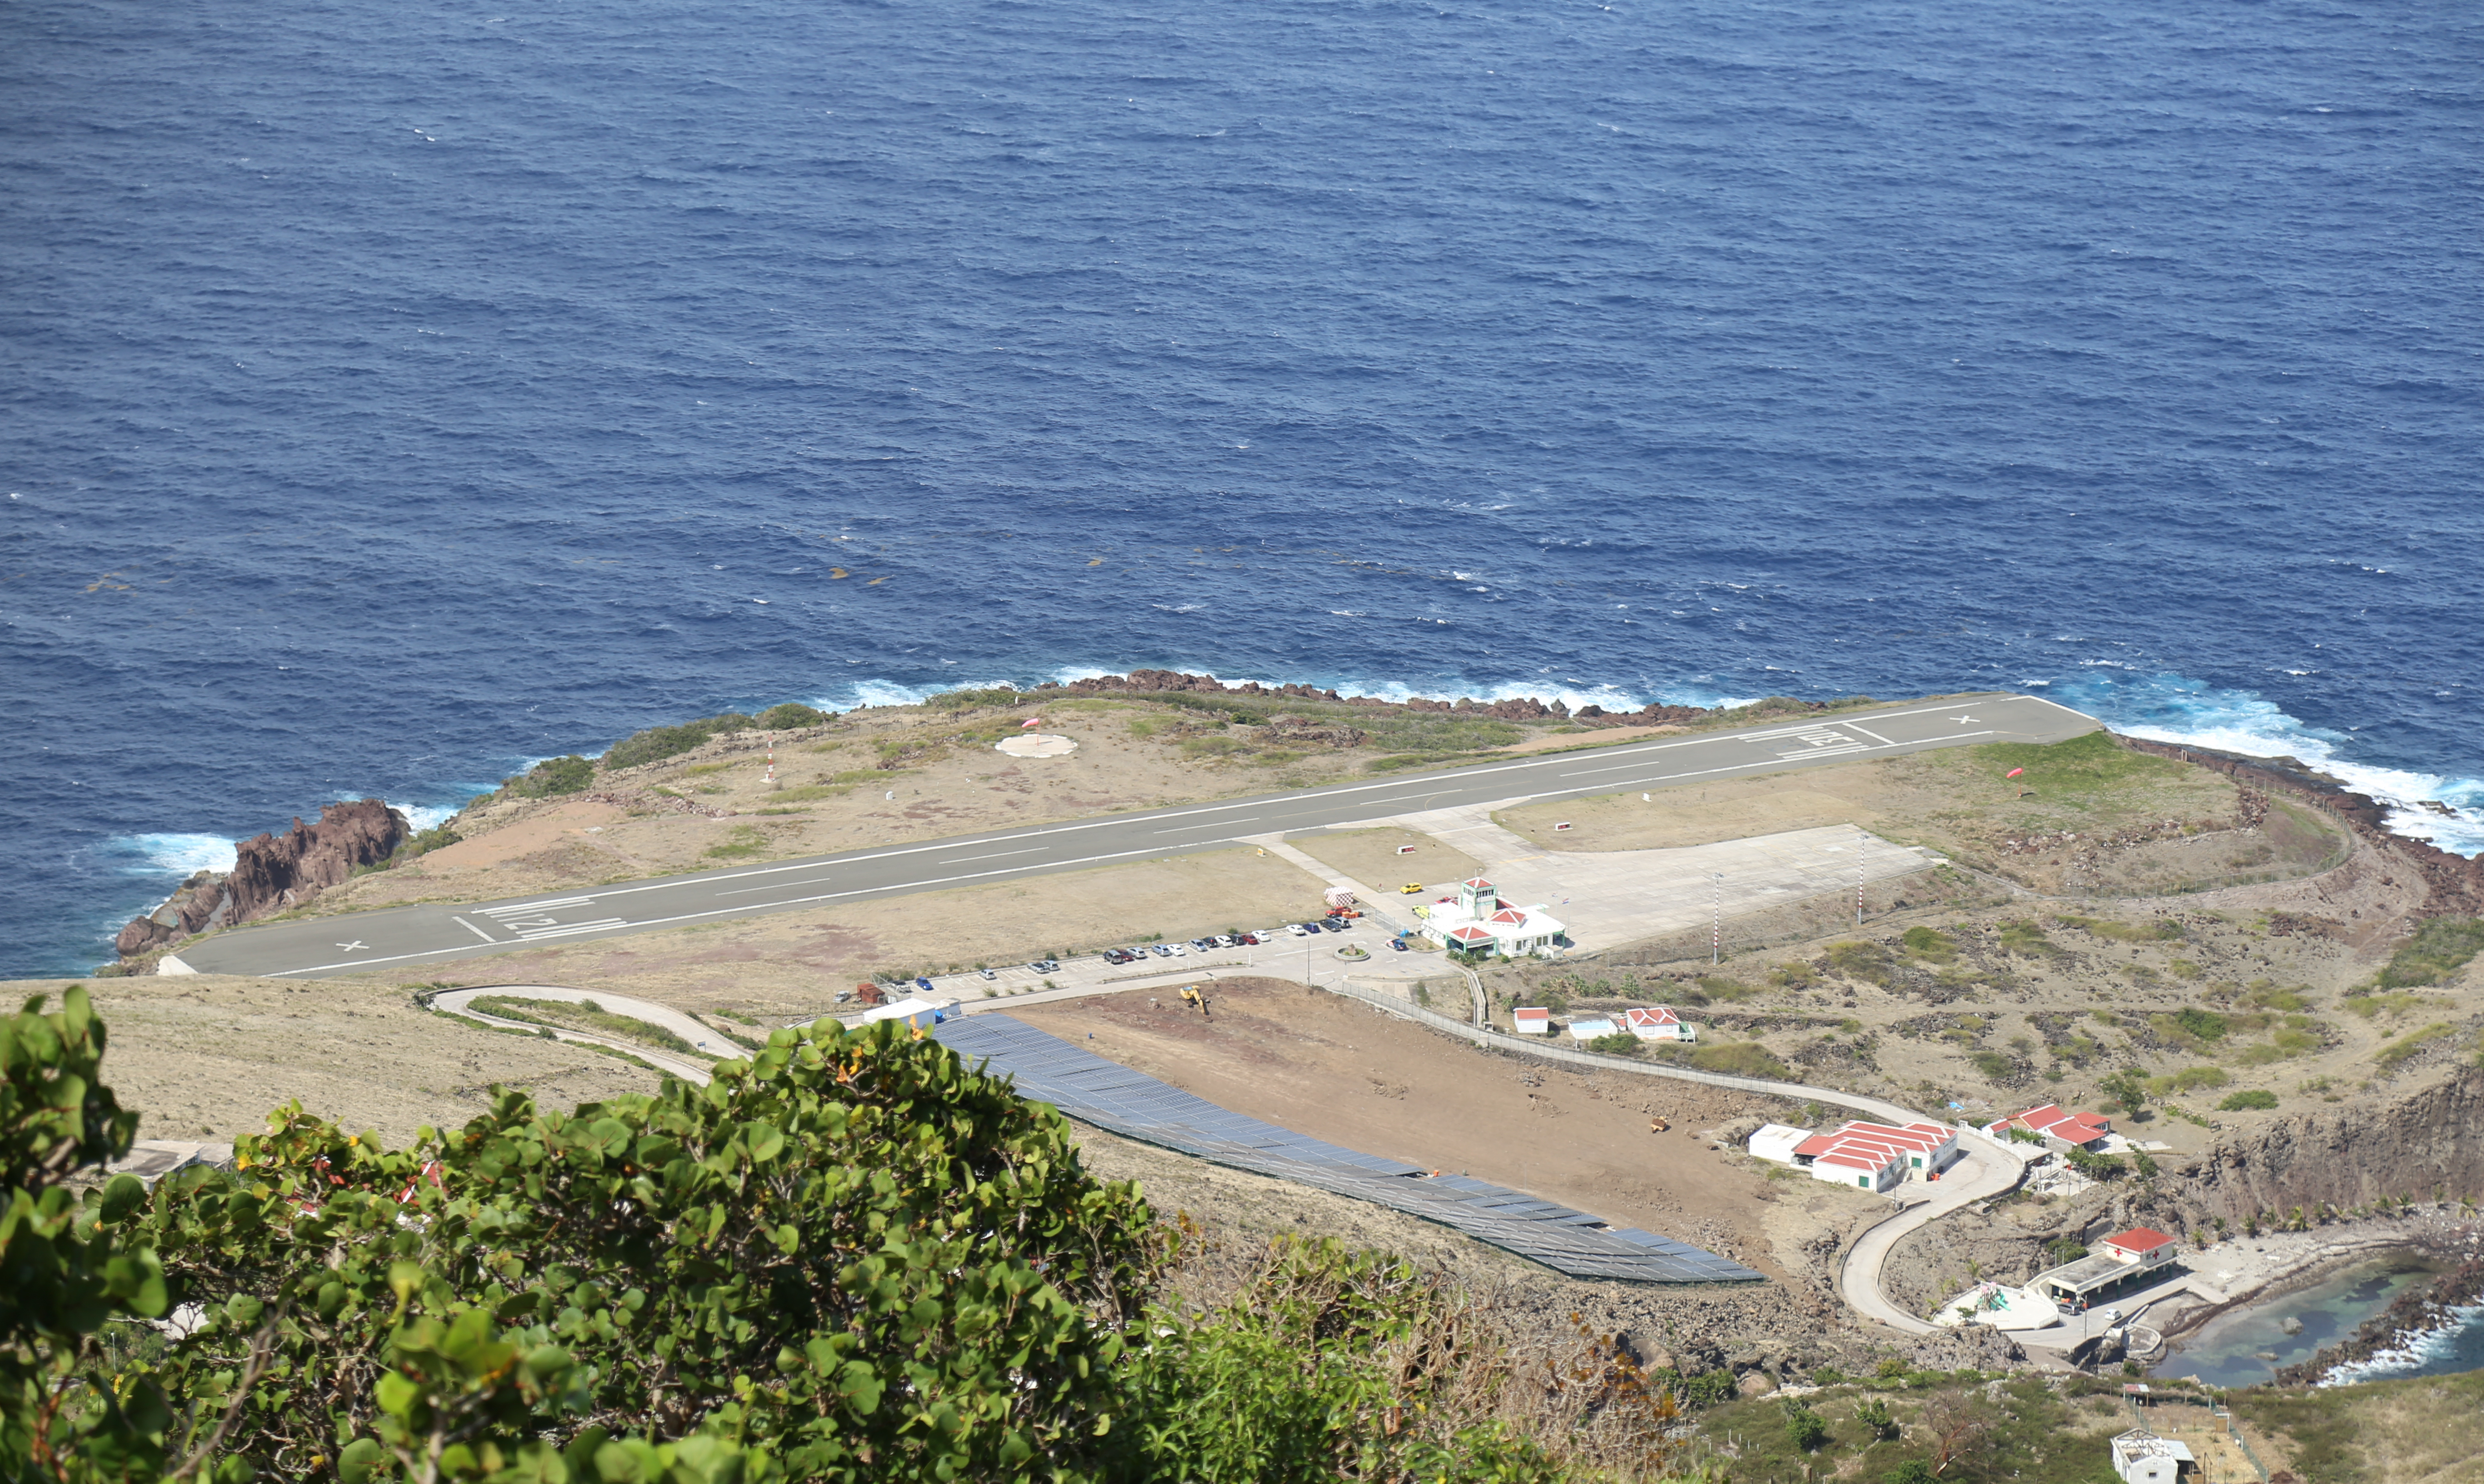 Saba airport. They say it's like landing on an aircraft carrier